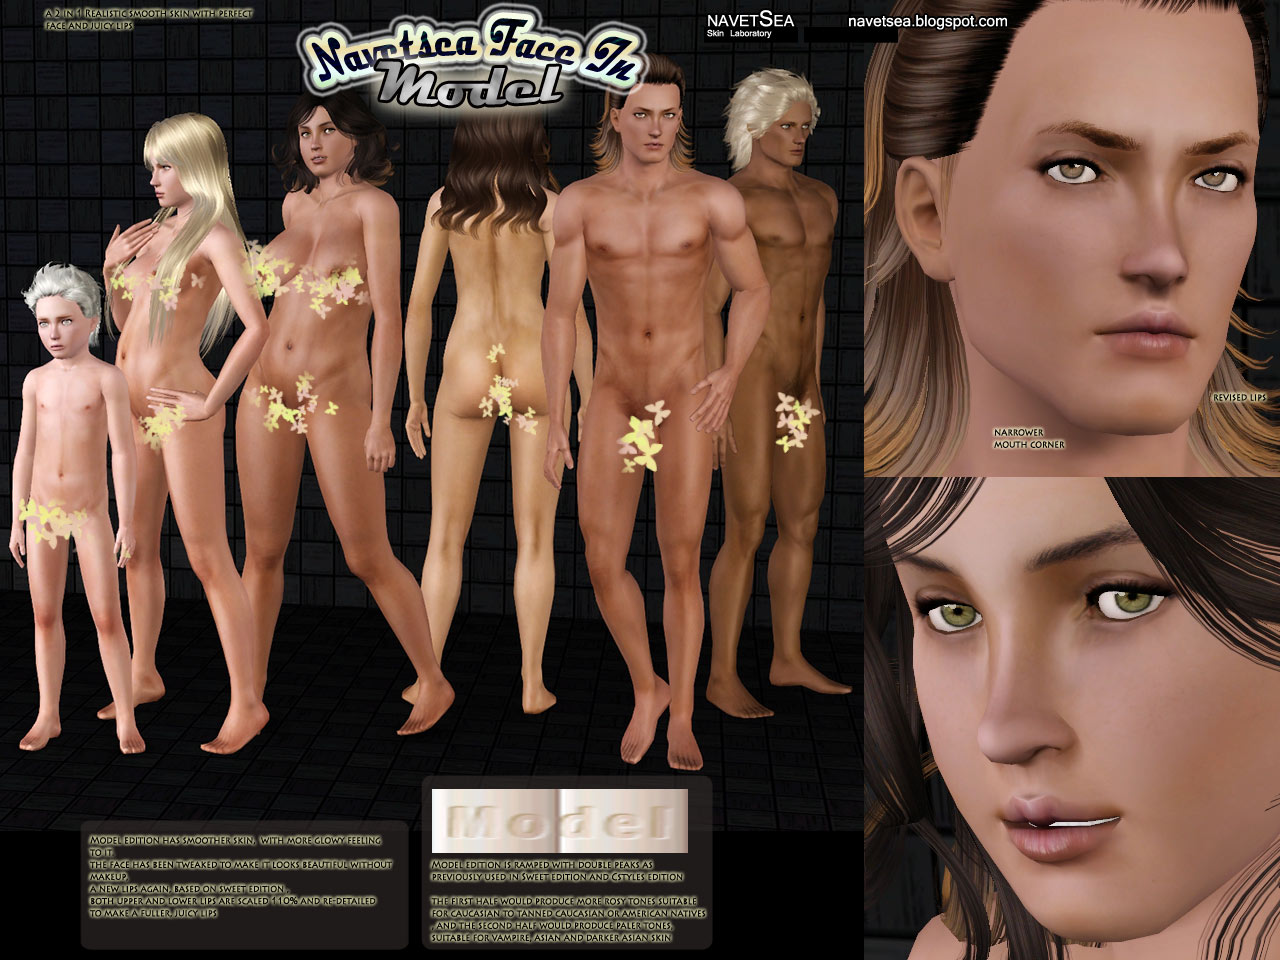 The sims family naked hardcore scenes